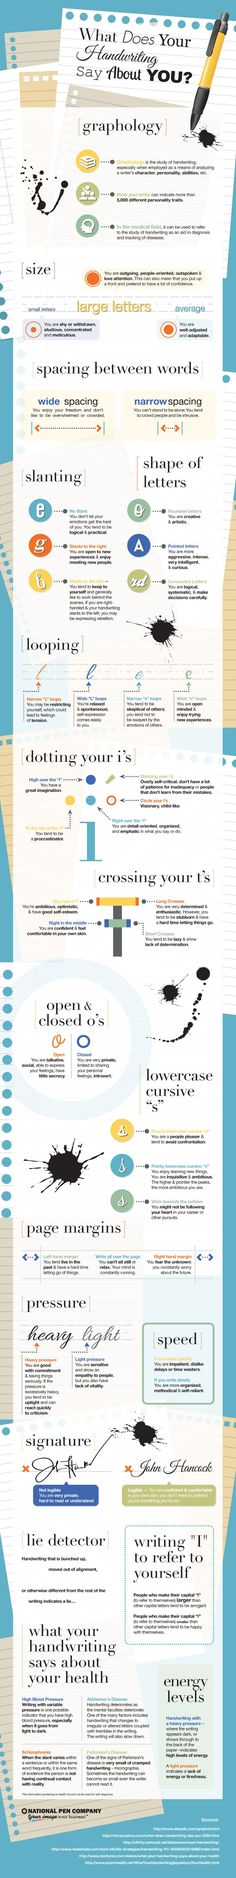 [INFOGRAPHIC] What Does Your Handwriting Say About You? Size; Spacing; Slanting; Shape; Dotting i's; Crossing t's; O's; page margins; Pressure; Signature; Details